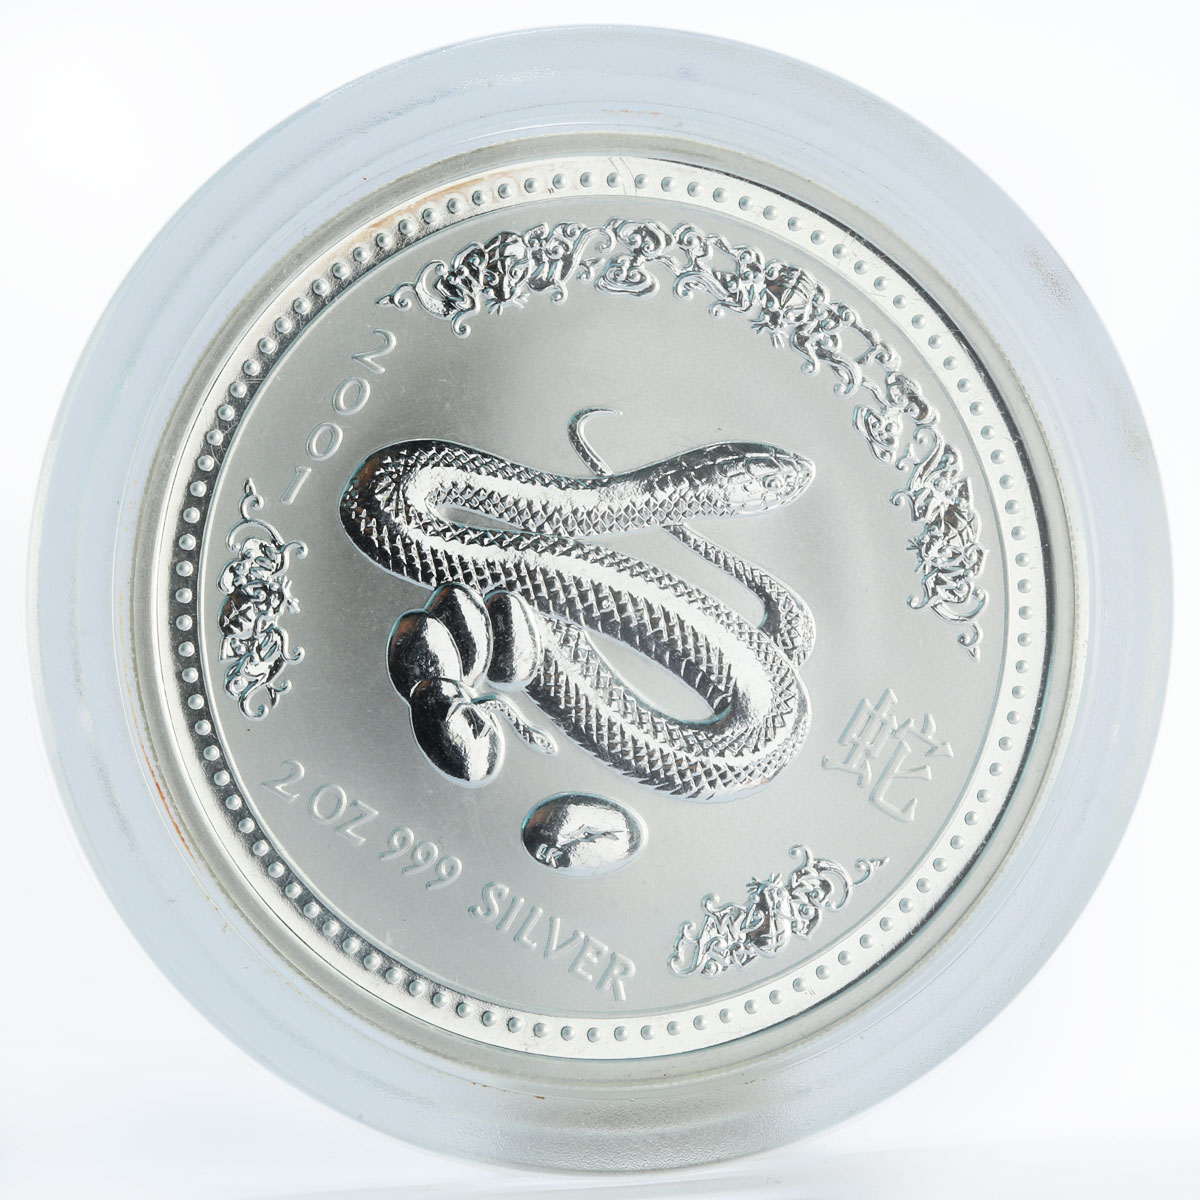 Australia 2 dollars Lunar Year Series I Year of the Snake proof silver coin 2001